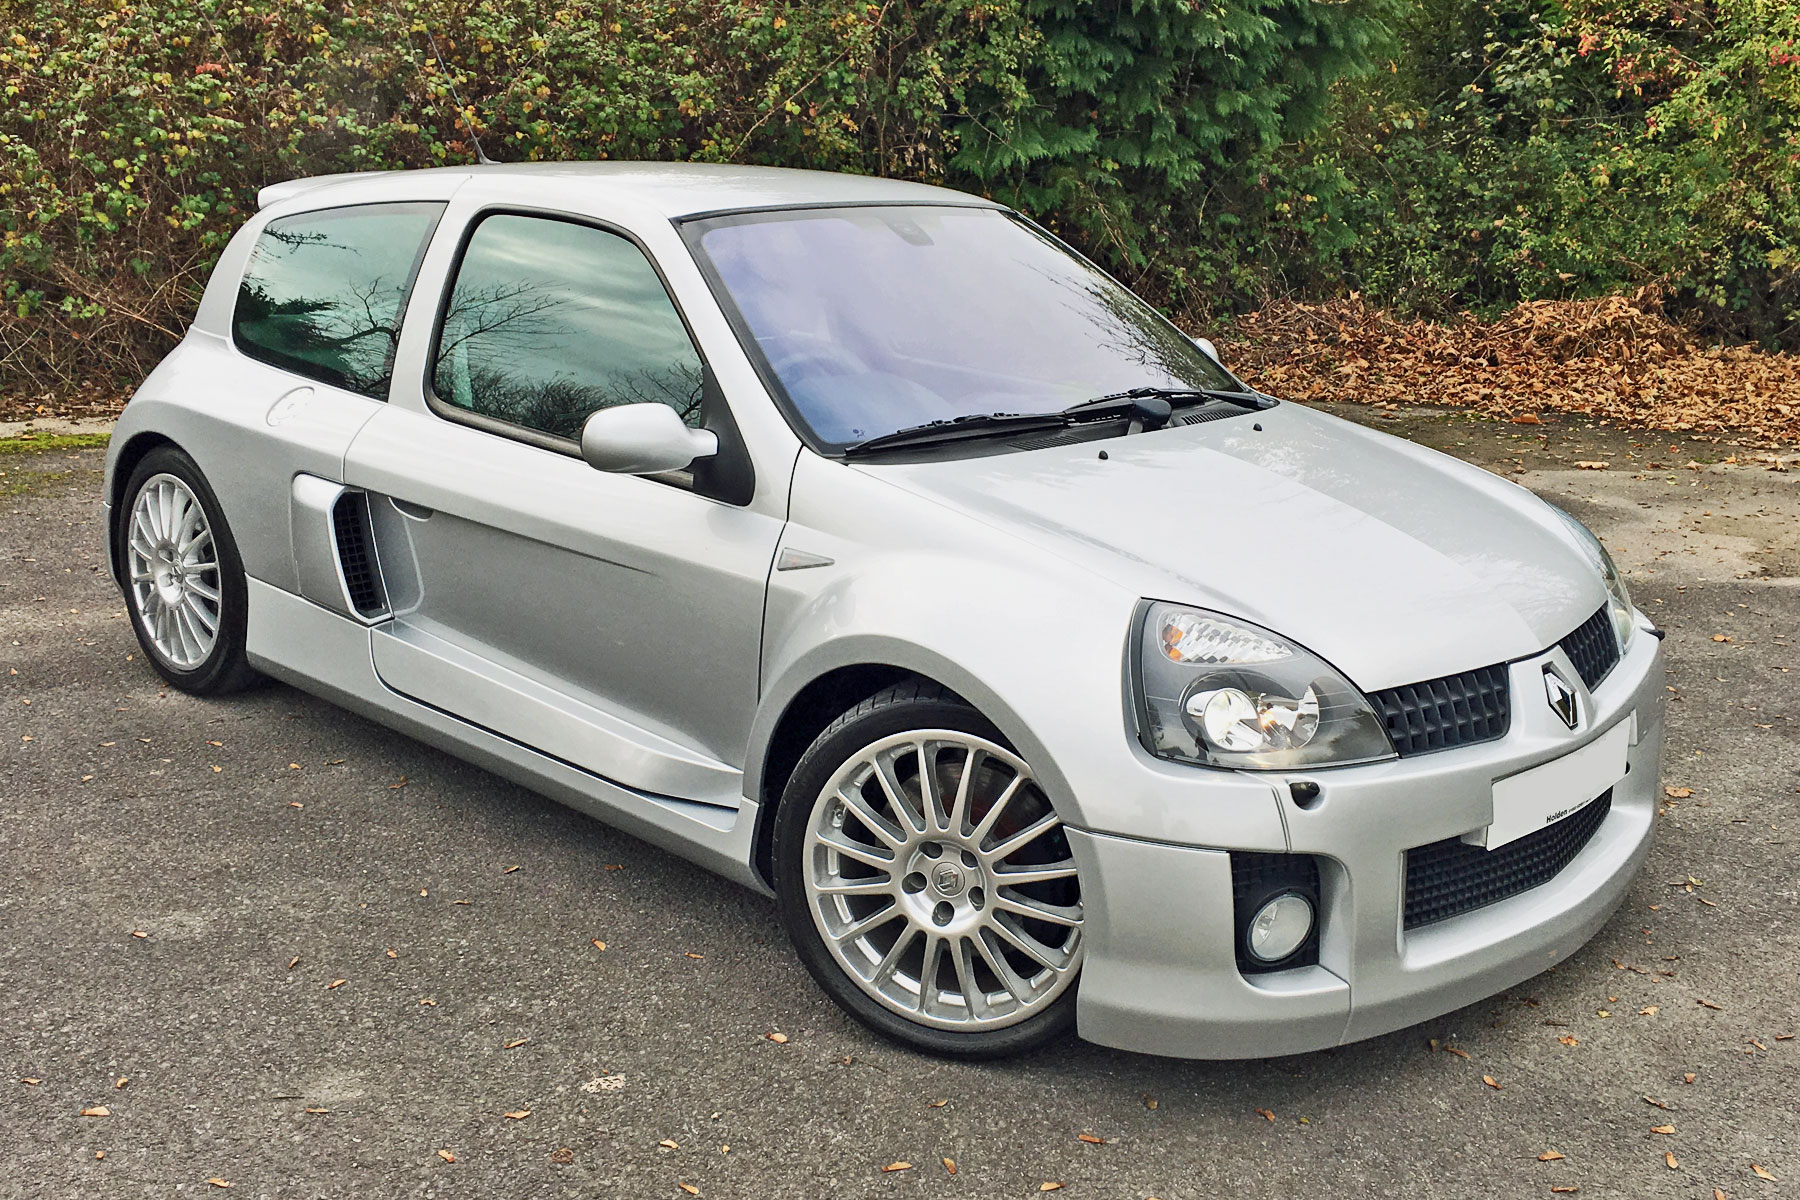 Renault Clio V6: Retro Road Test